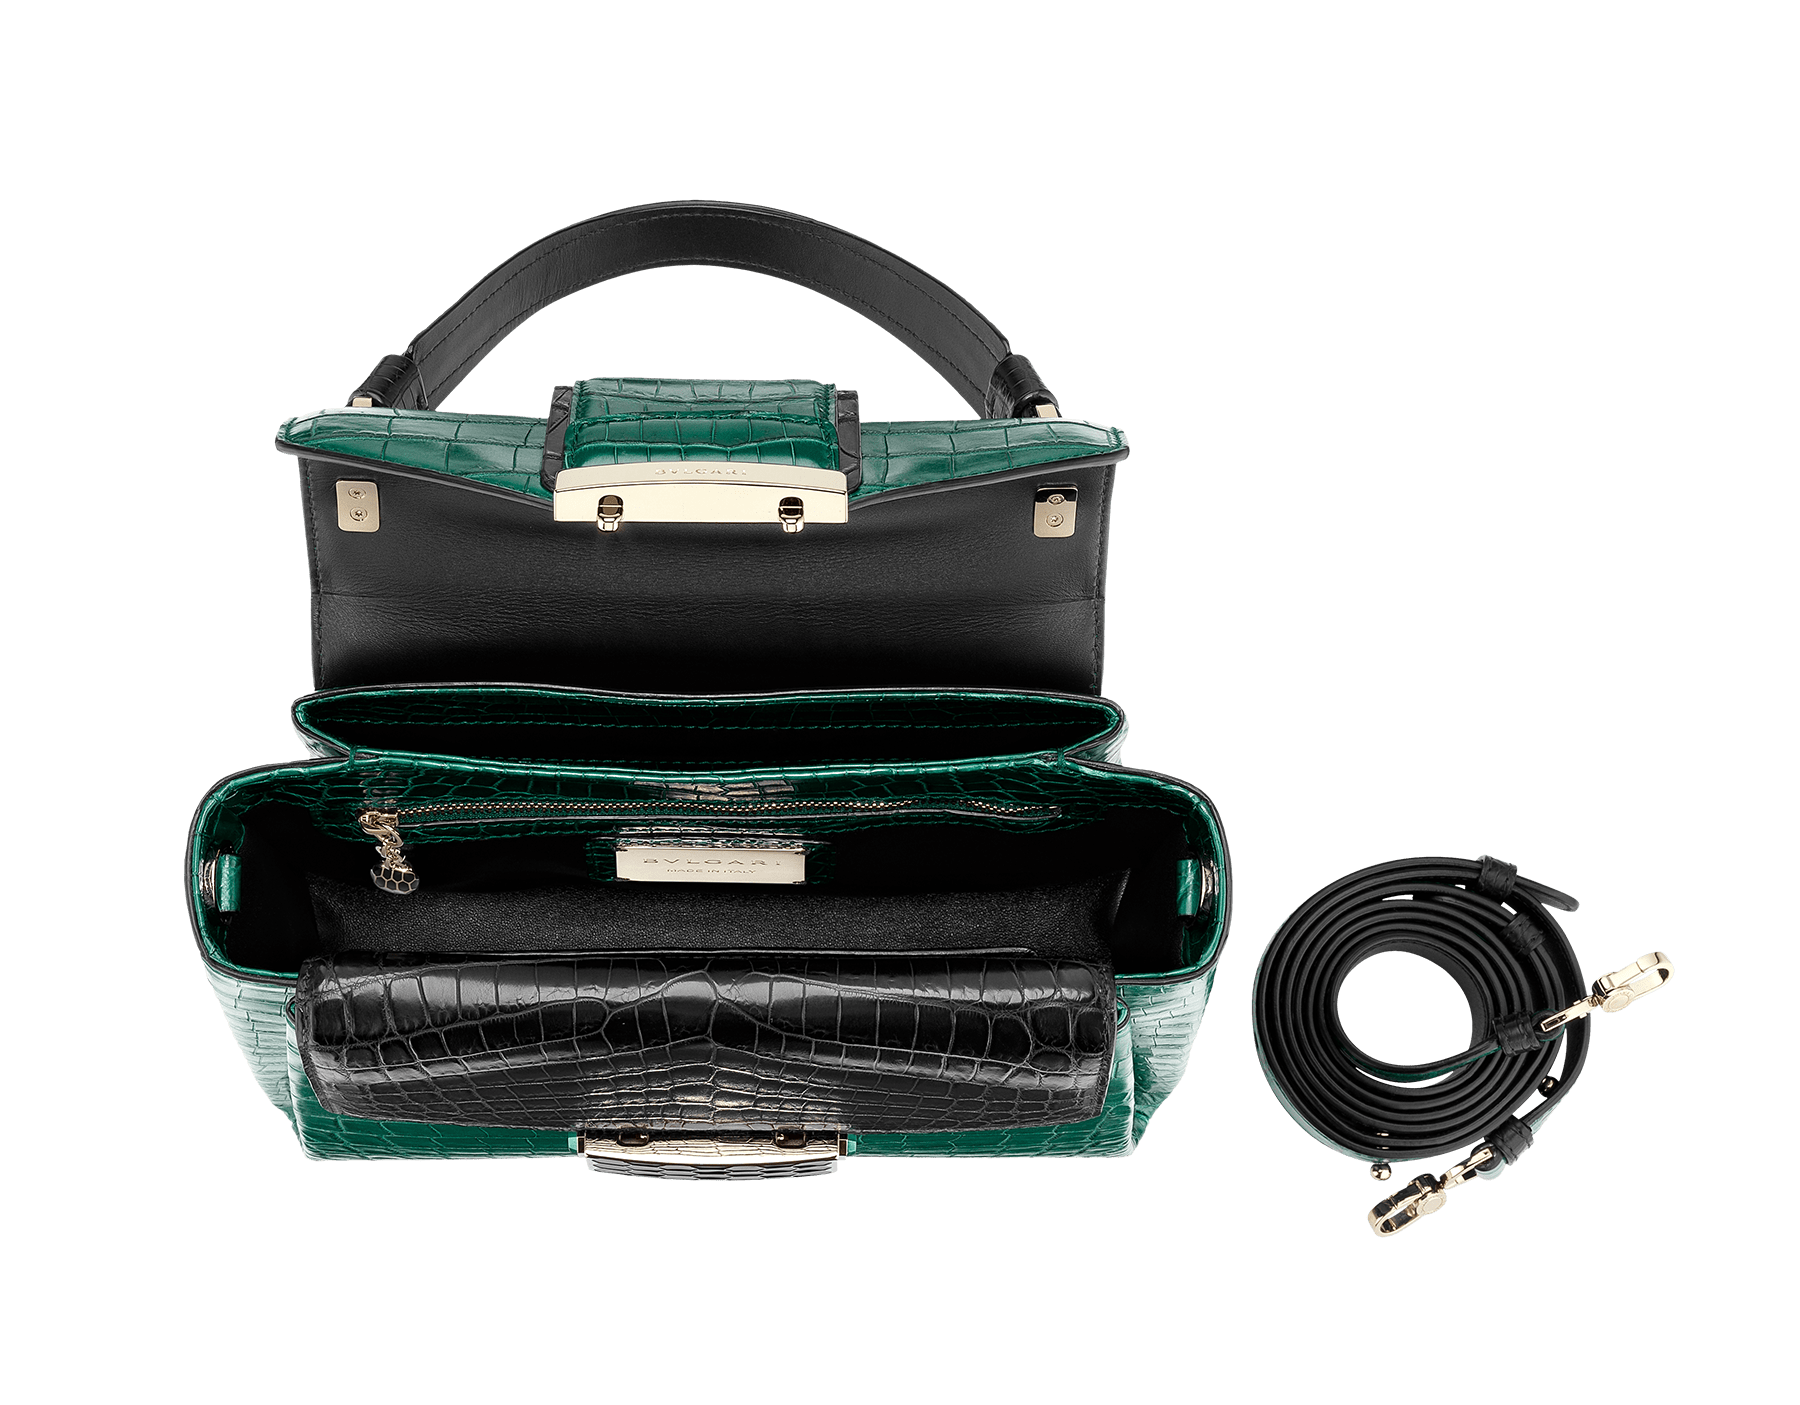 Top handle bag Serpenti Viper in forest emerald and black matt crocodile skin. Brass light gold plated hardware and snap closure in black shiny enamel with iconic Scaglie design. 284488 image 2